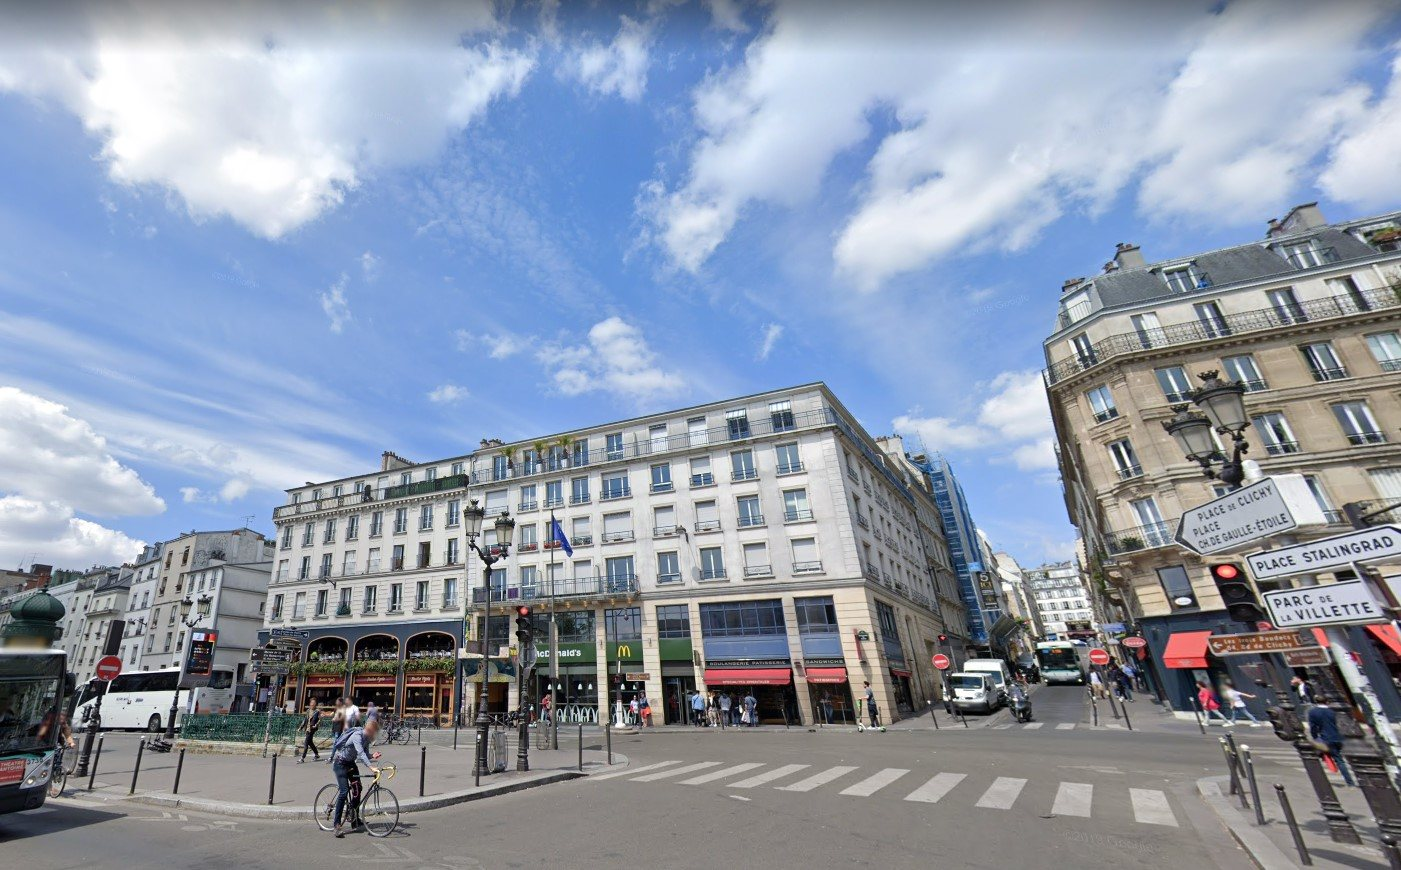 VERY GOOD DEAL: Very inexpensive business in Pigalle! 1